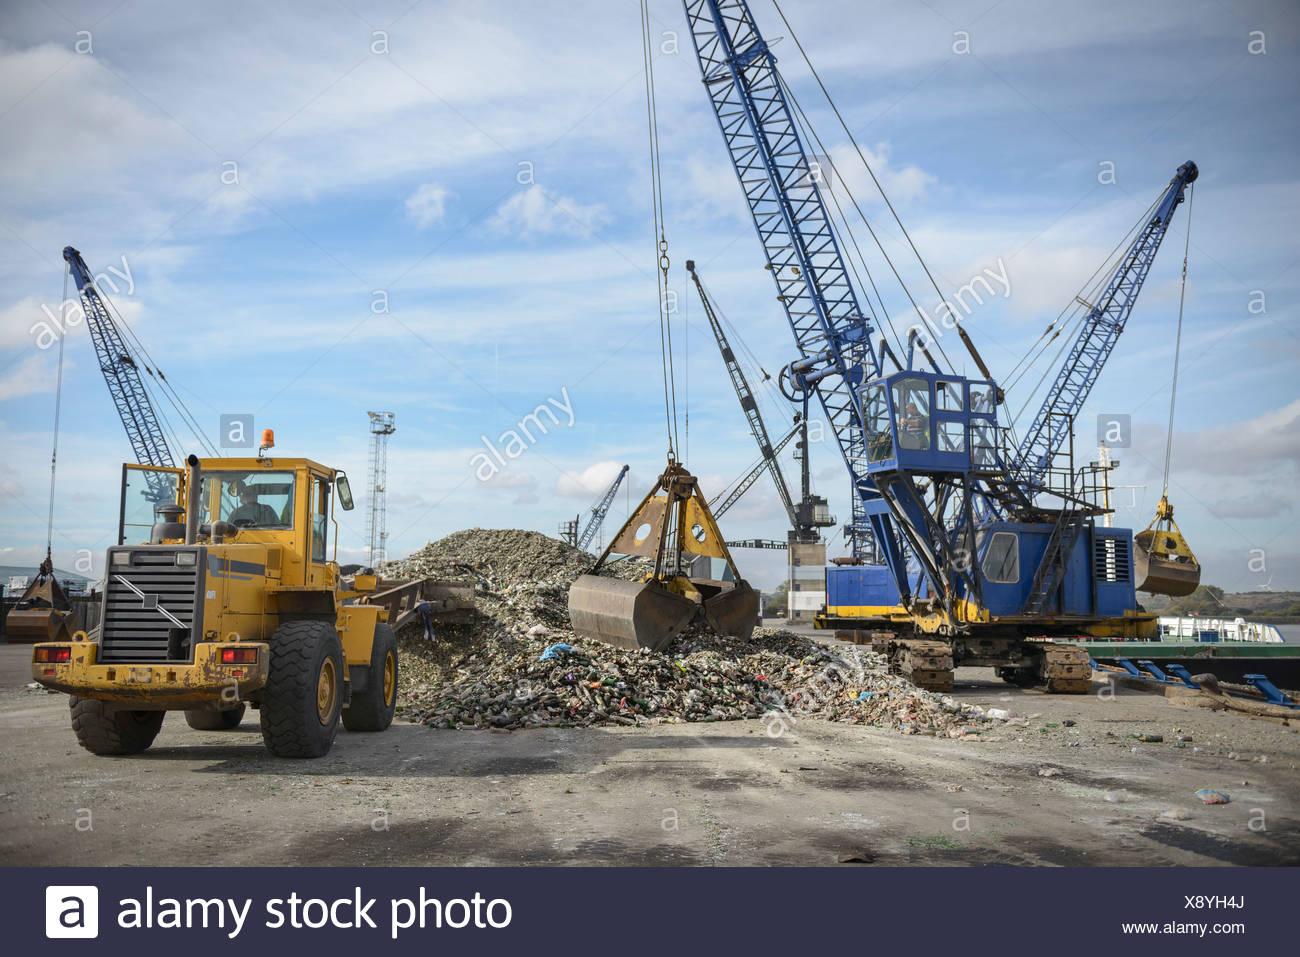 Crane and digger loading recycled glass onto ships - Stock Image